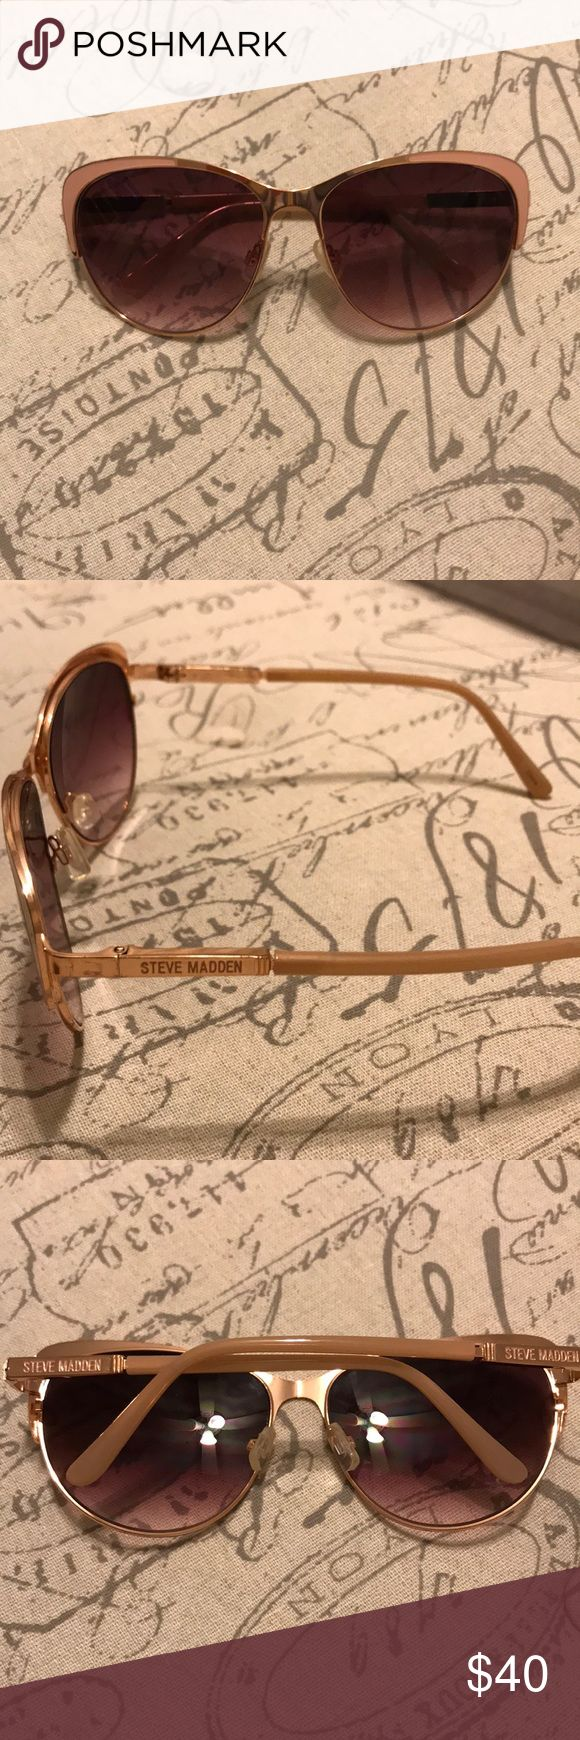 Steve Madden women's sunglasses Steve Madden women's sunglasses. Light pink and gold detail. Steve Madden Accessories Glasses